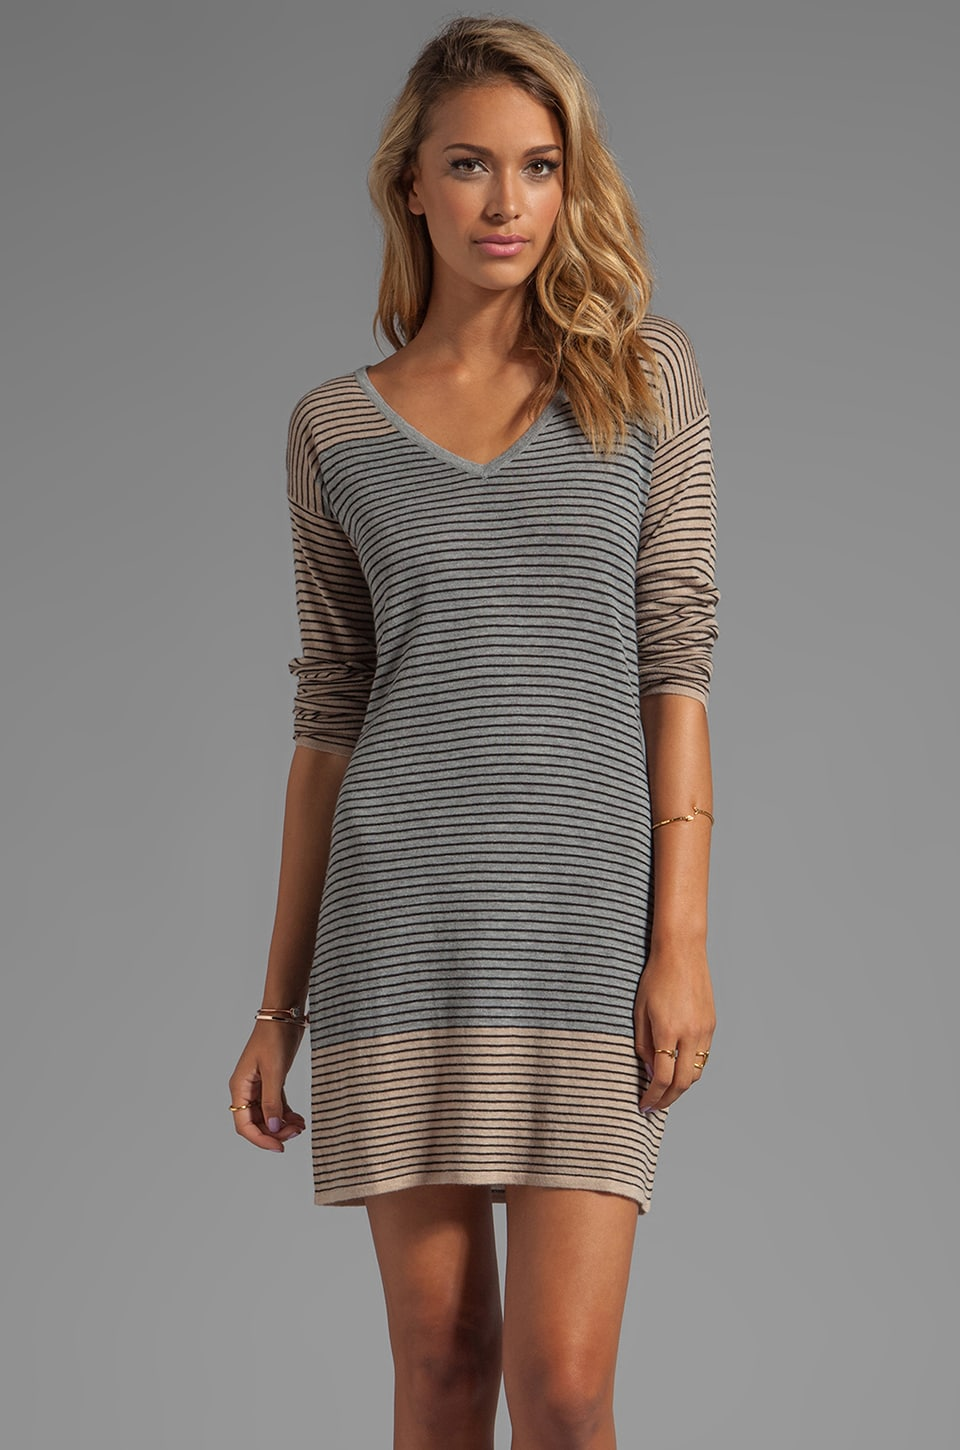 C&C California Mini Stripe Blocked Sweaters Long Sleeve V-neck Stripe Sweater Dress in Heather Grey